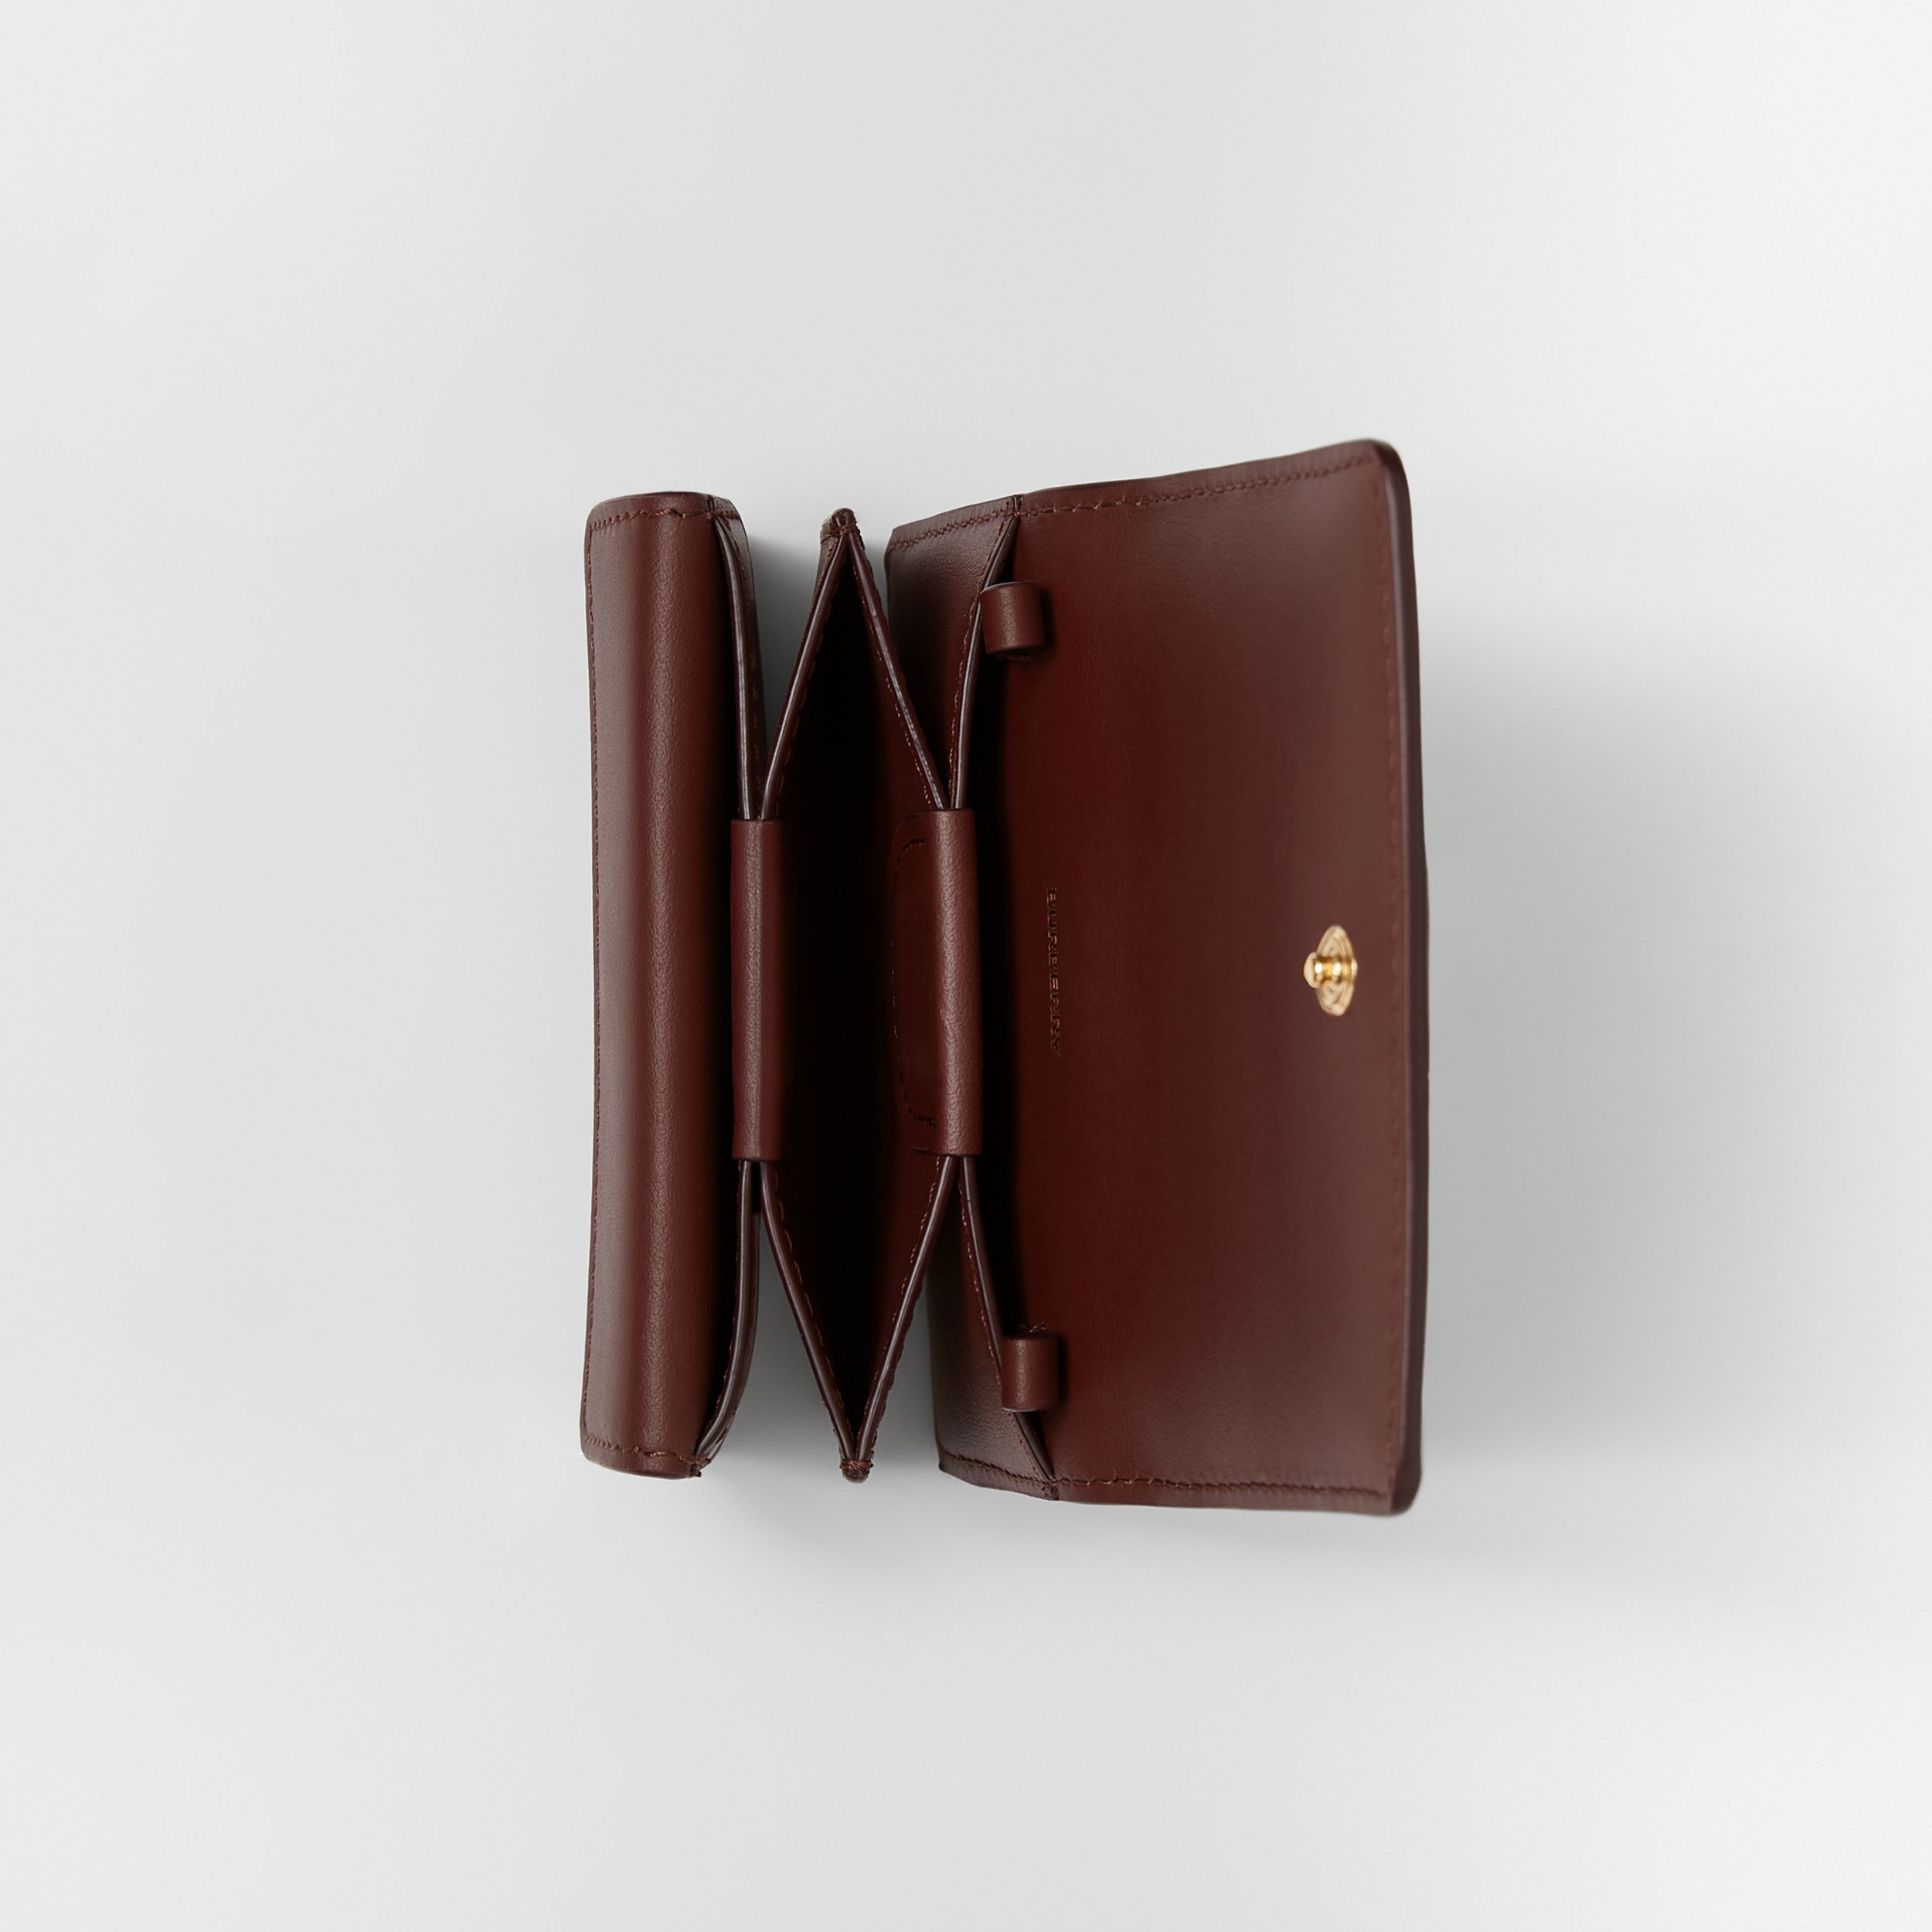 Quilted Lambskin Card Case with Detachable Strap in Garnet - Women | Burberry Hong Kong S.A.R. - 4